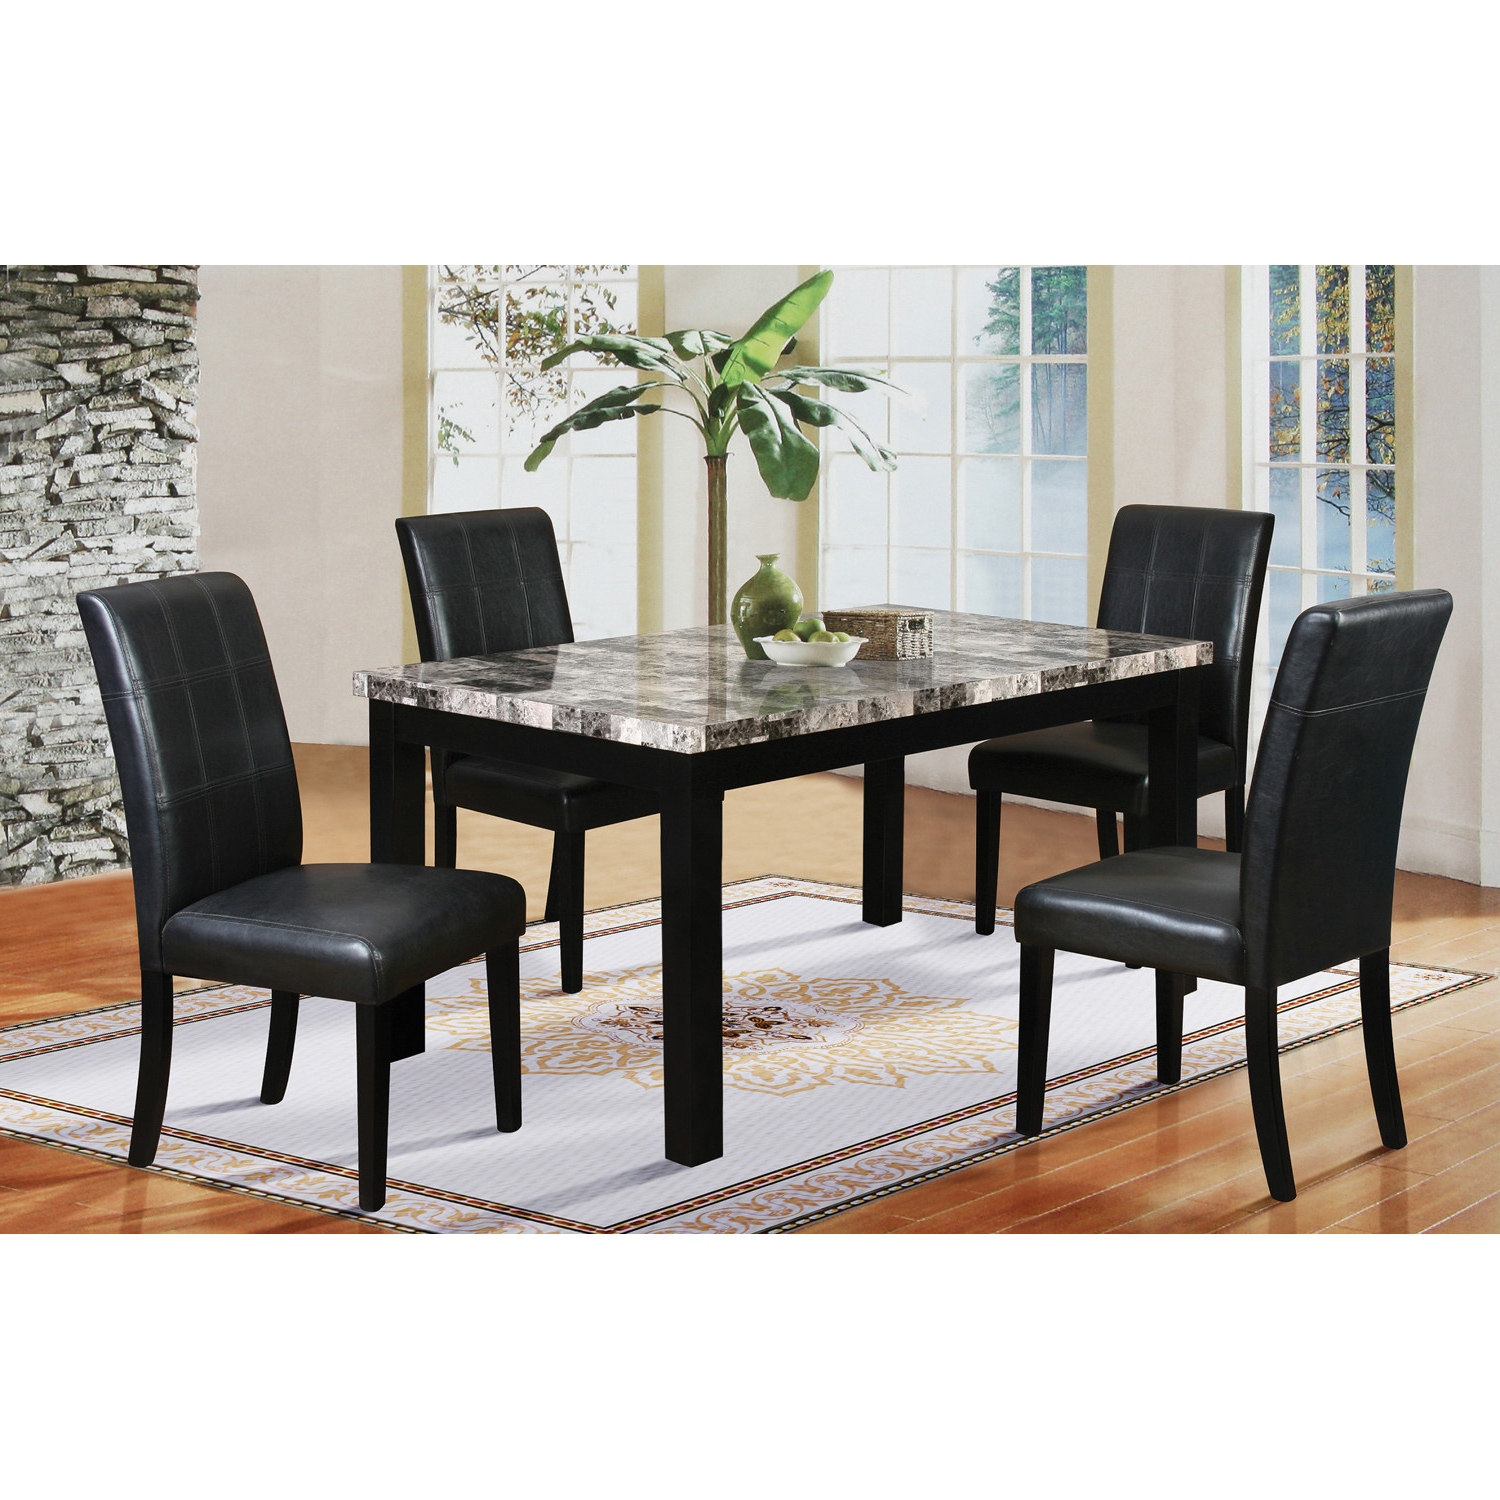 Most Recent Cargo 5 Piece Dining Sets With Regard To Latitude Run Cahill 5 Piece Dining Set Reviews (View 20 of 25)